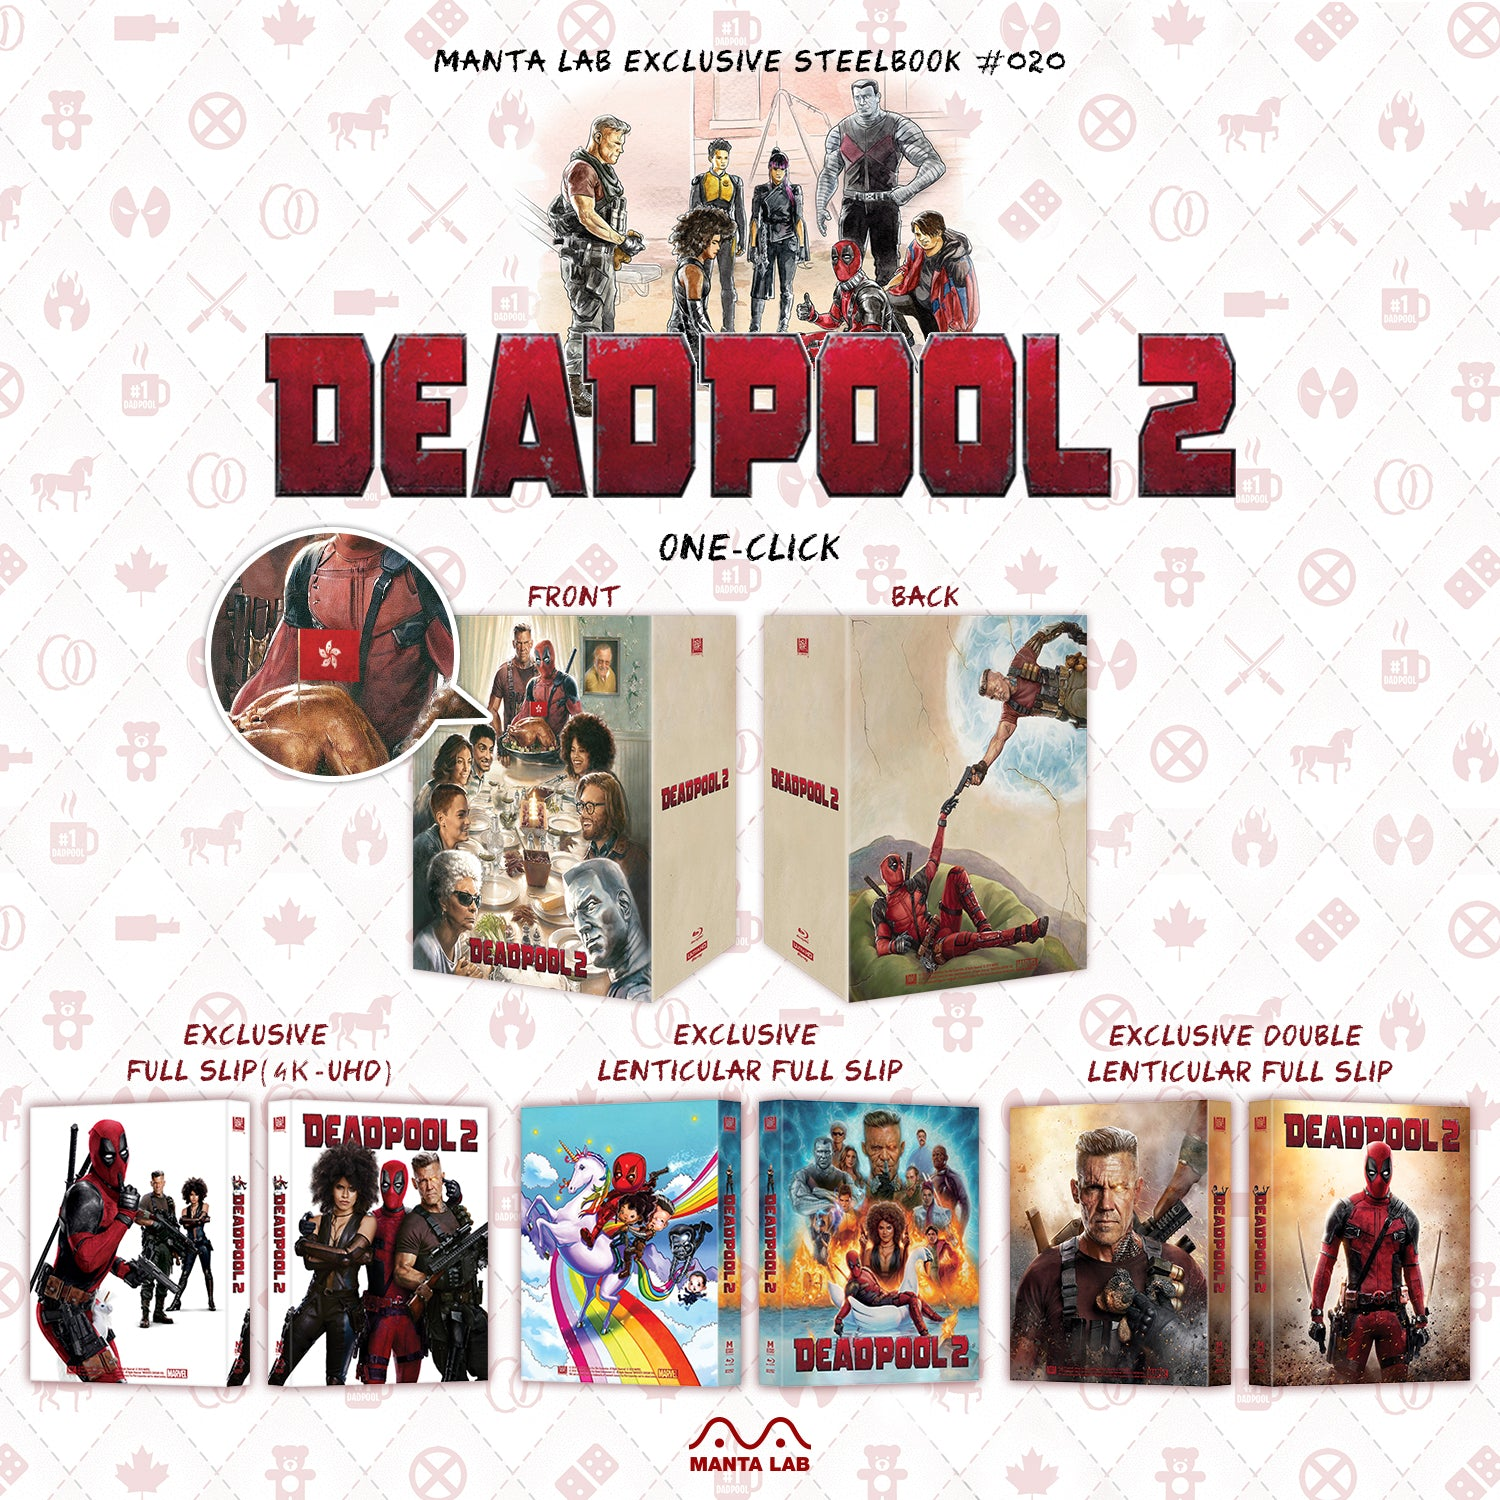 [ME#20] Deadpool 2 Steelbook (One Click)